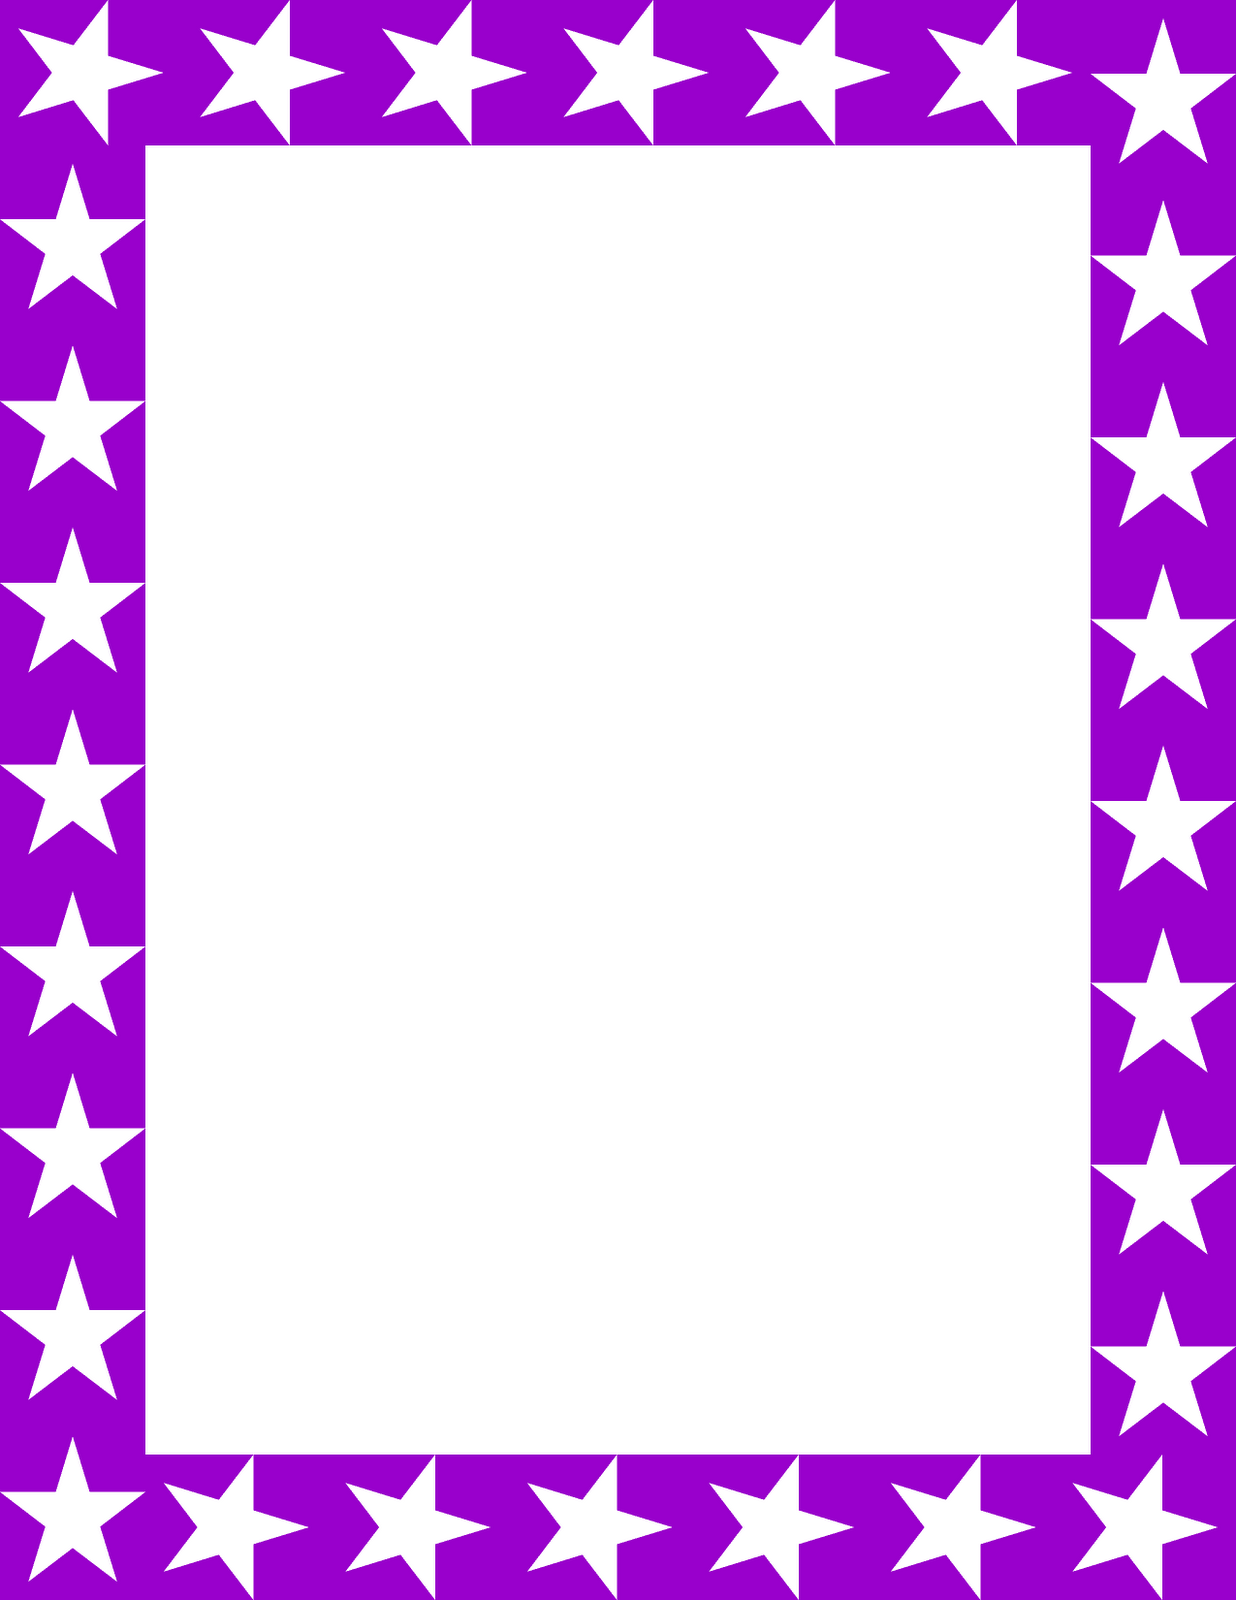 Free Frames And Borders Png | Classroom Freebies: Free Page Frames  Microsoft Word Page Border Templates